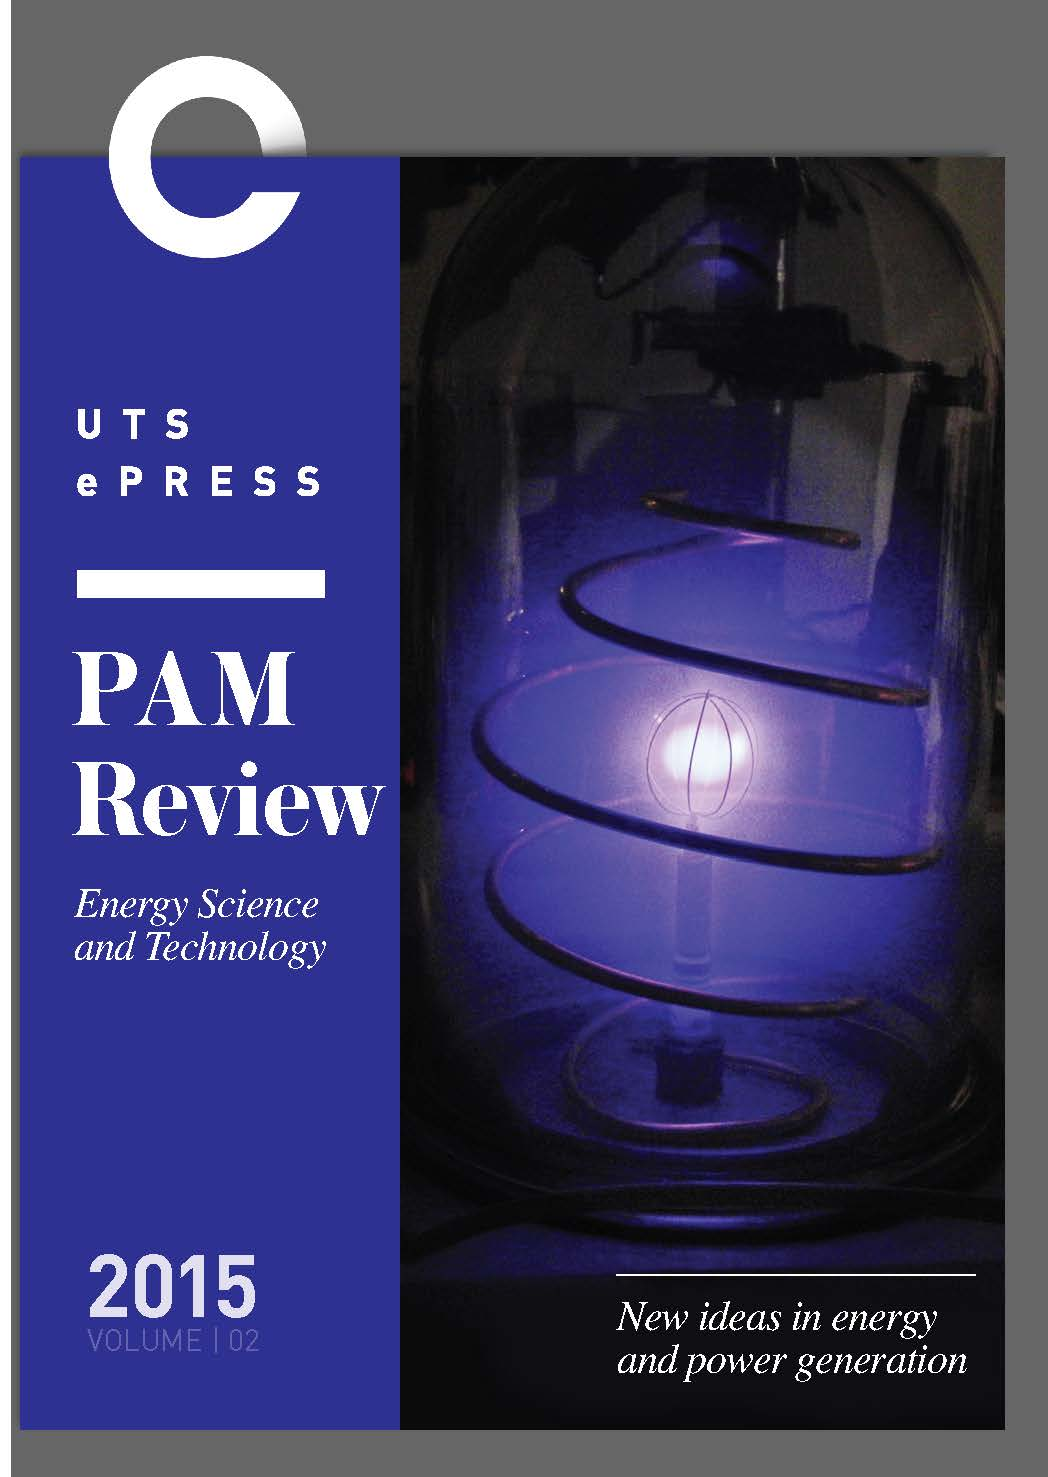 PAM Review 2015 Journal Cover - (CC BY SA image)